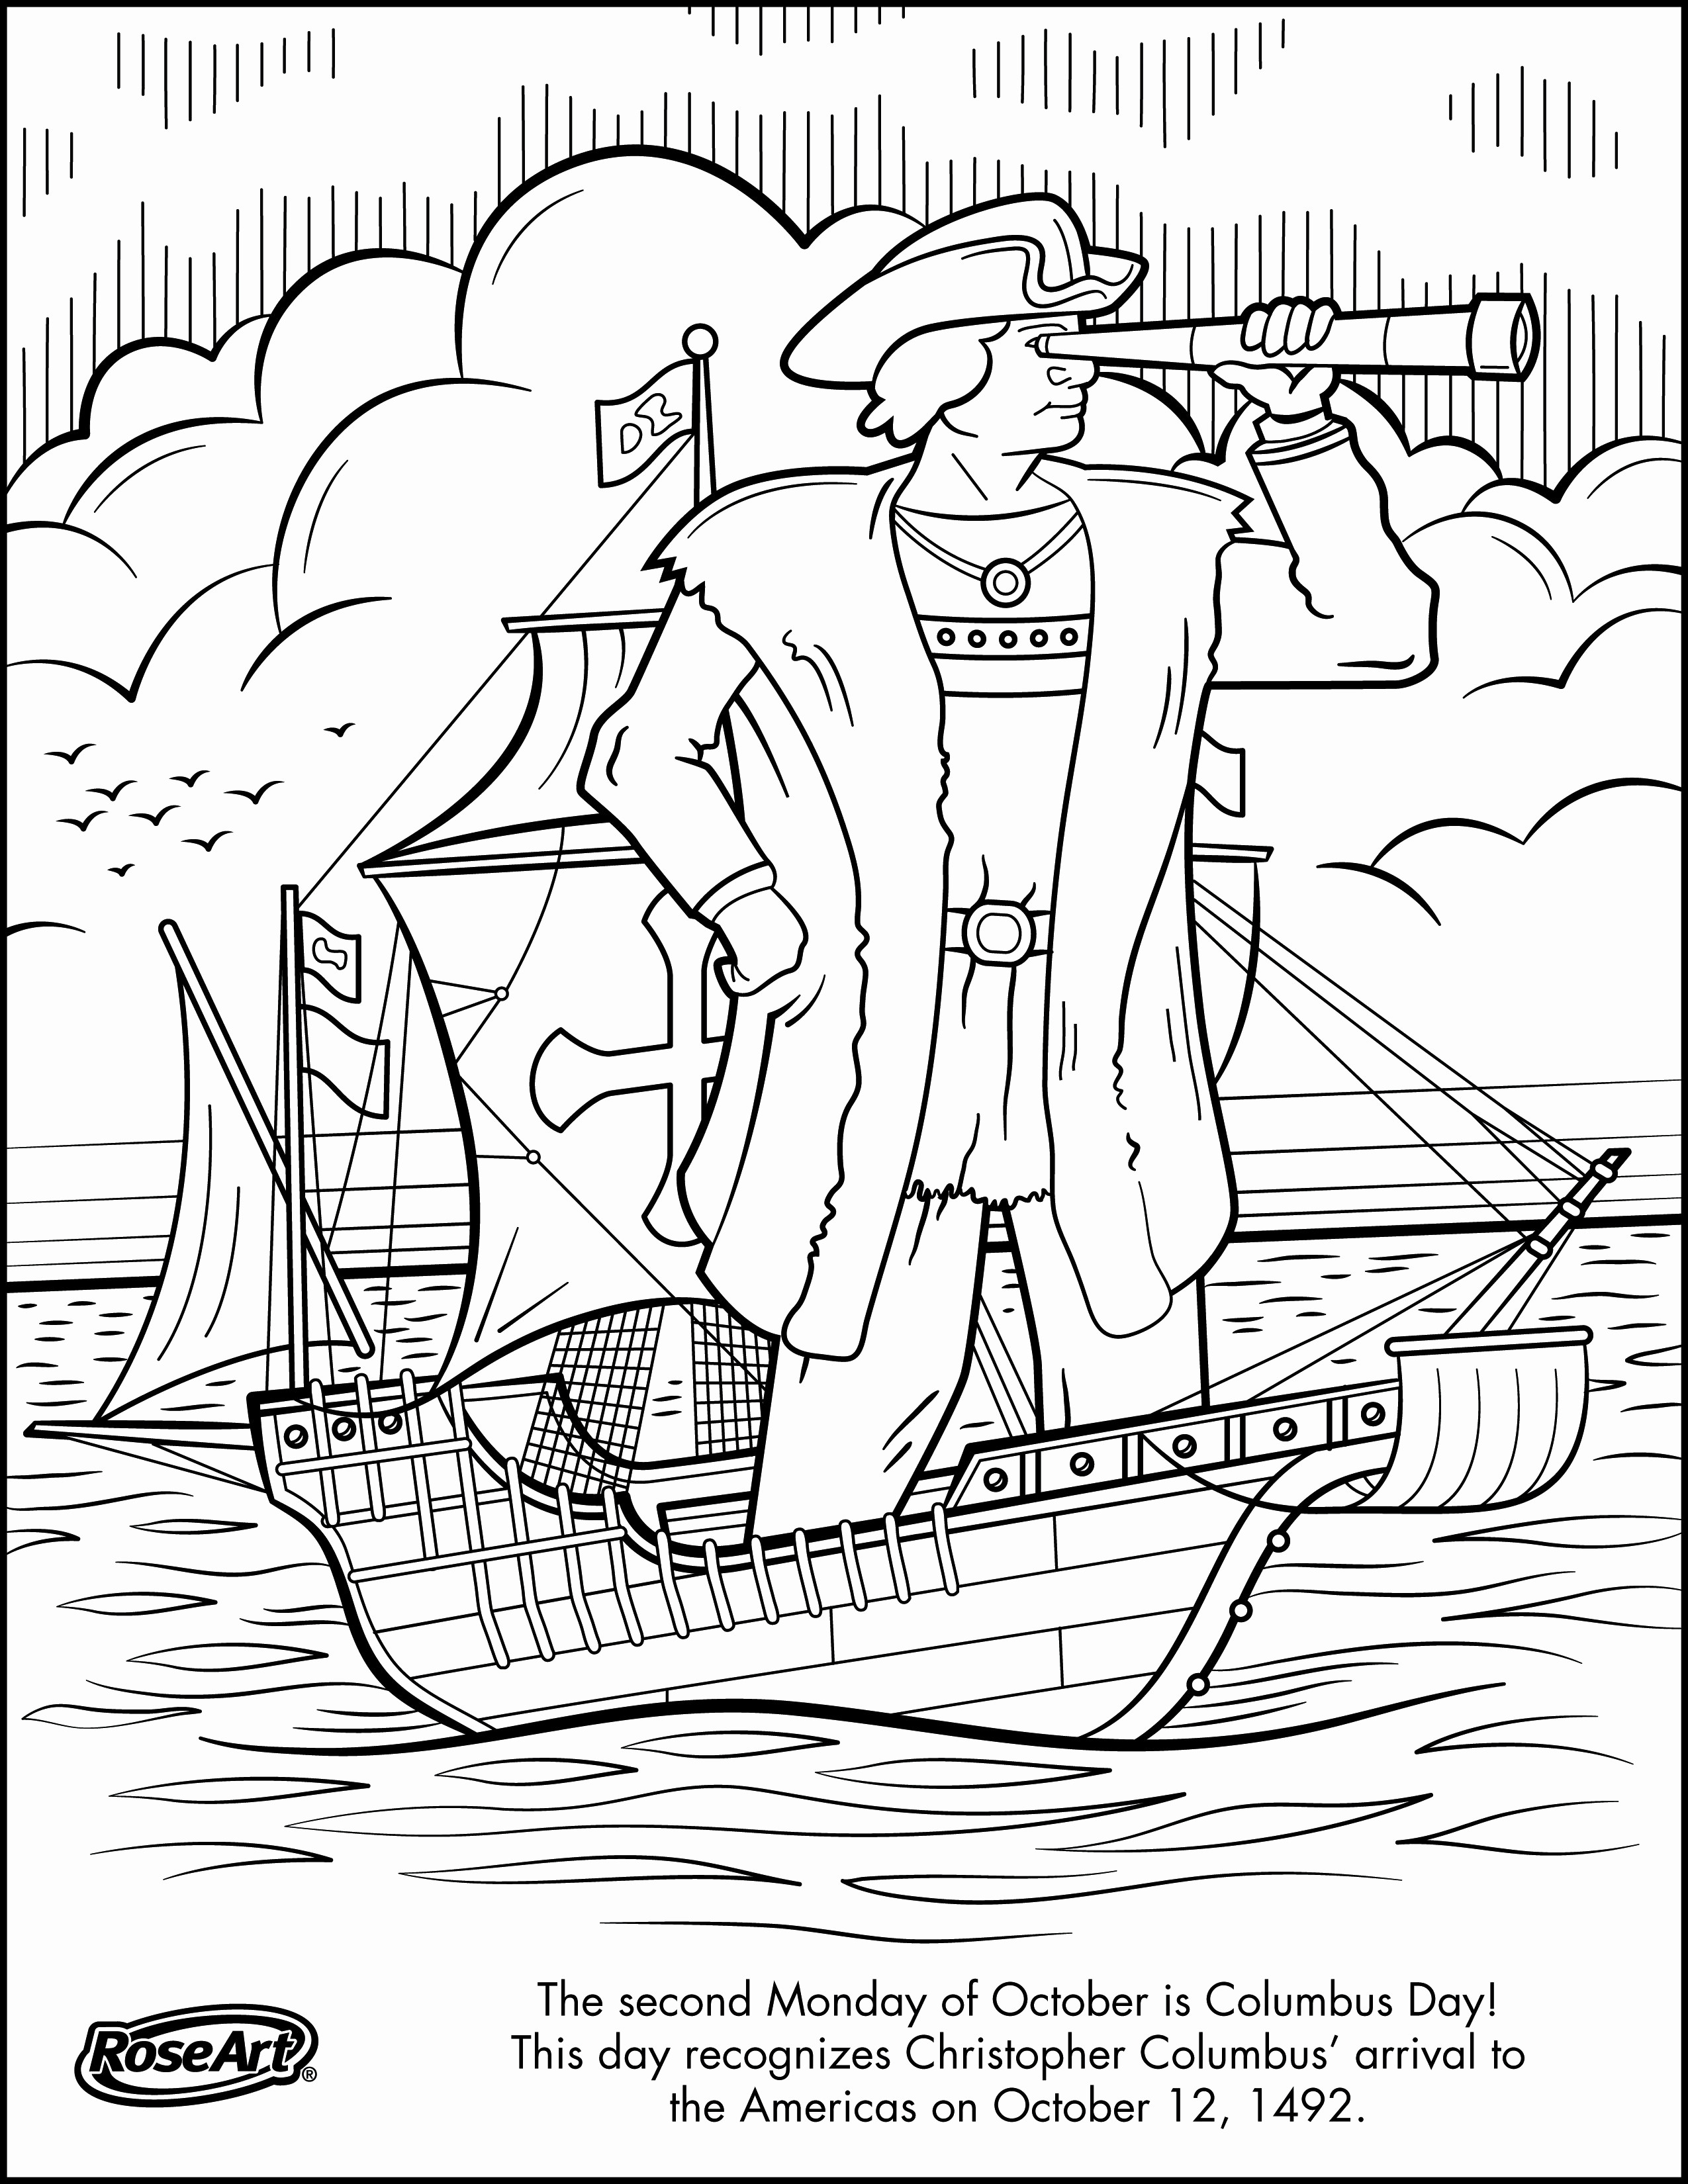 games coloring pages Collection-Coloring Pages Games 6-a